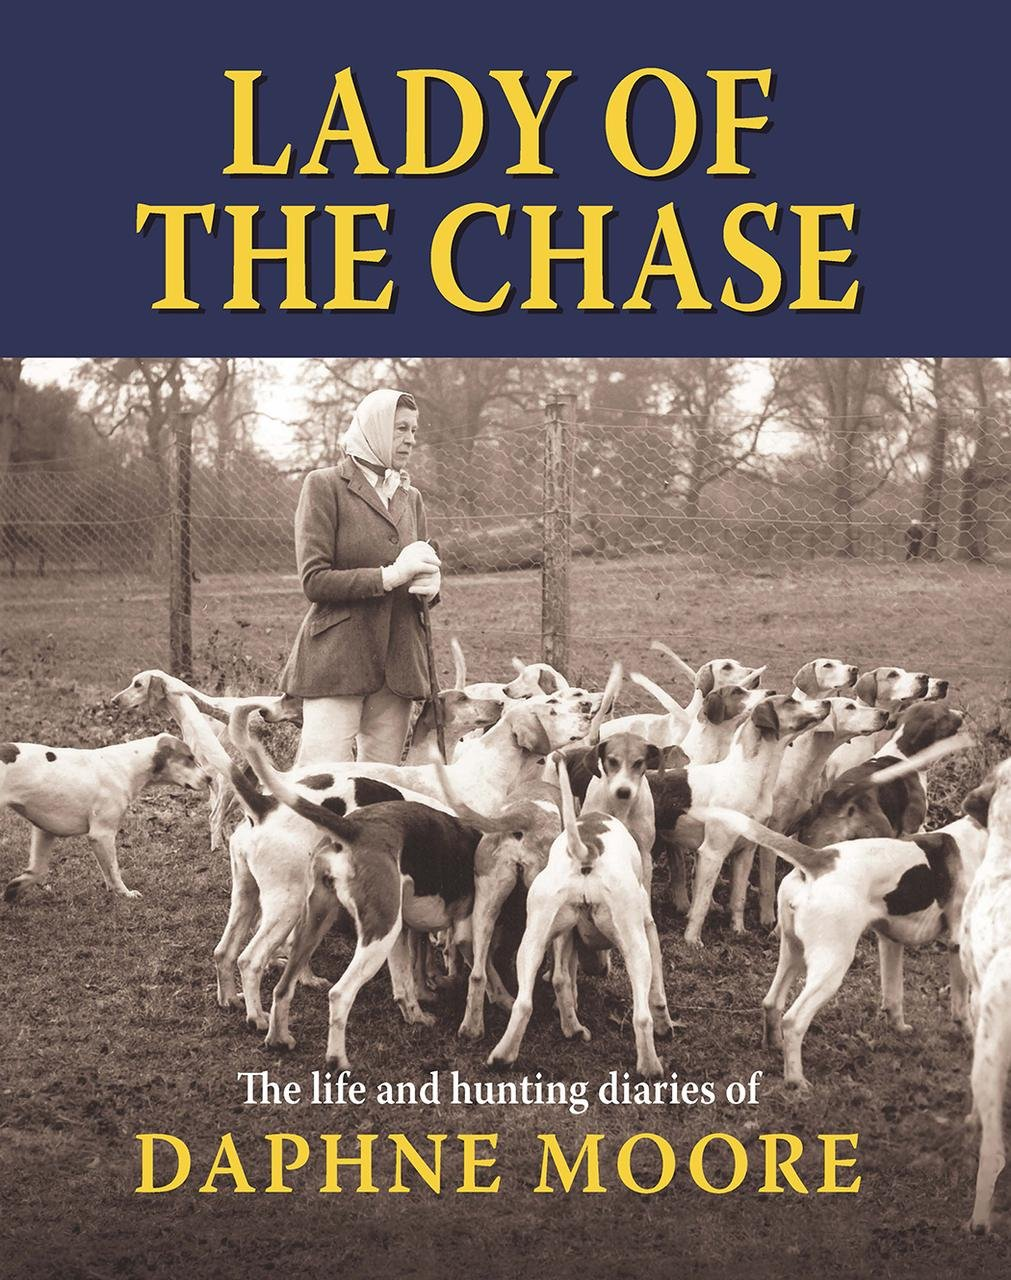 Lady of the Chase: The Life and Hunting Diaries of Daphne Moore by Merlin Unwin Books